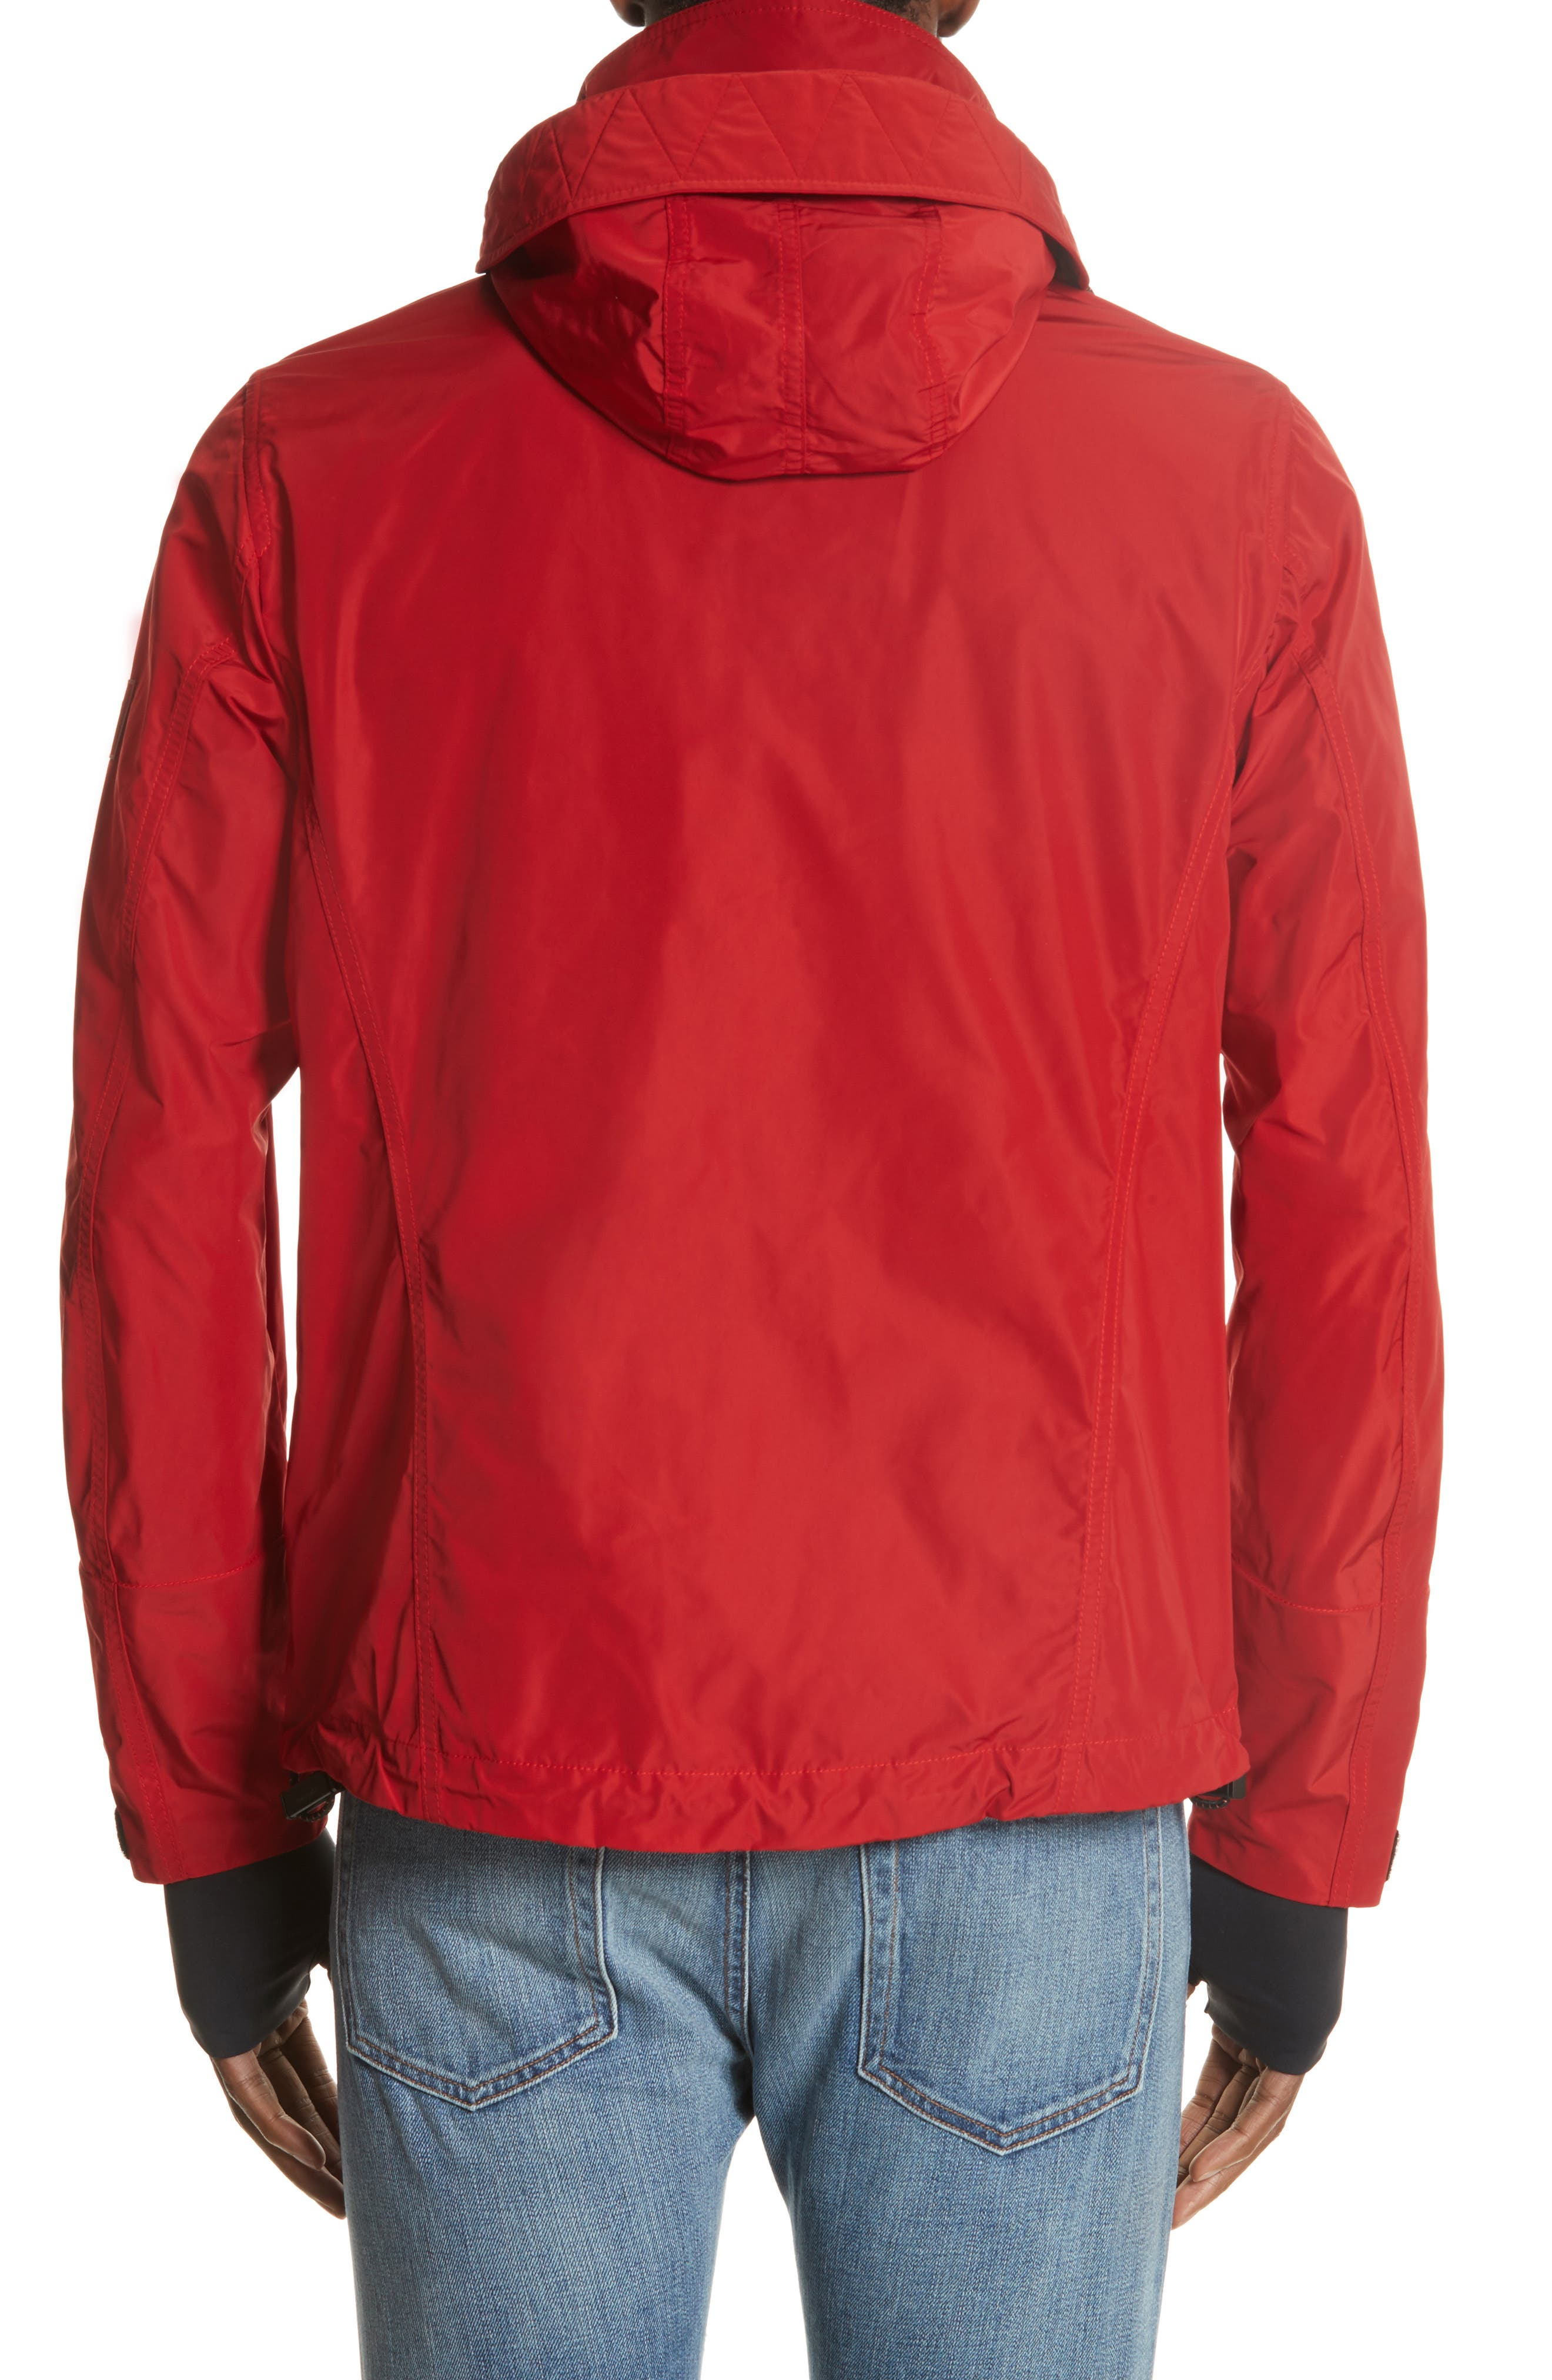 Headson Standard Fit Jacket,                             Alternate thumbnail 2, color,